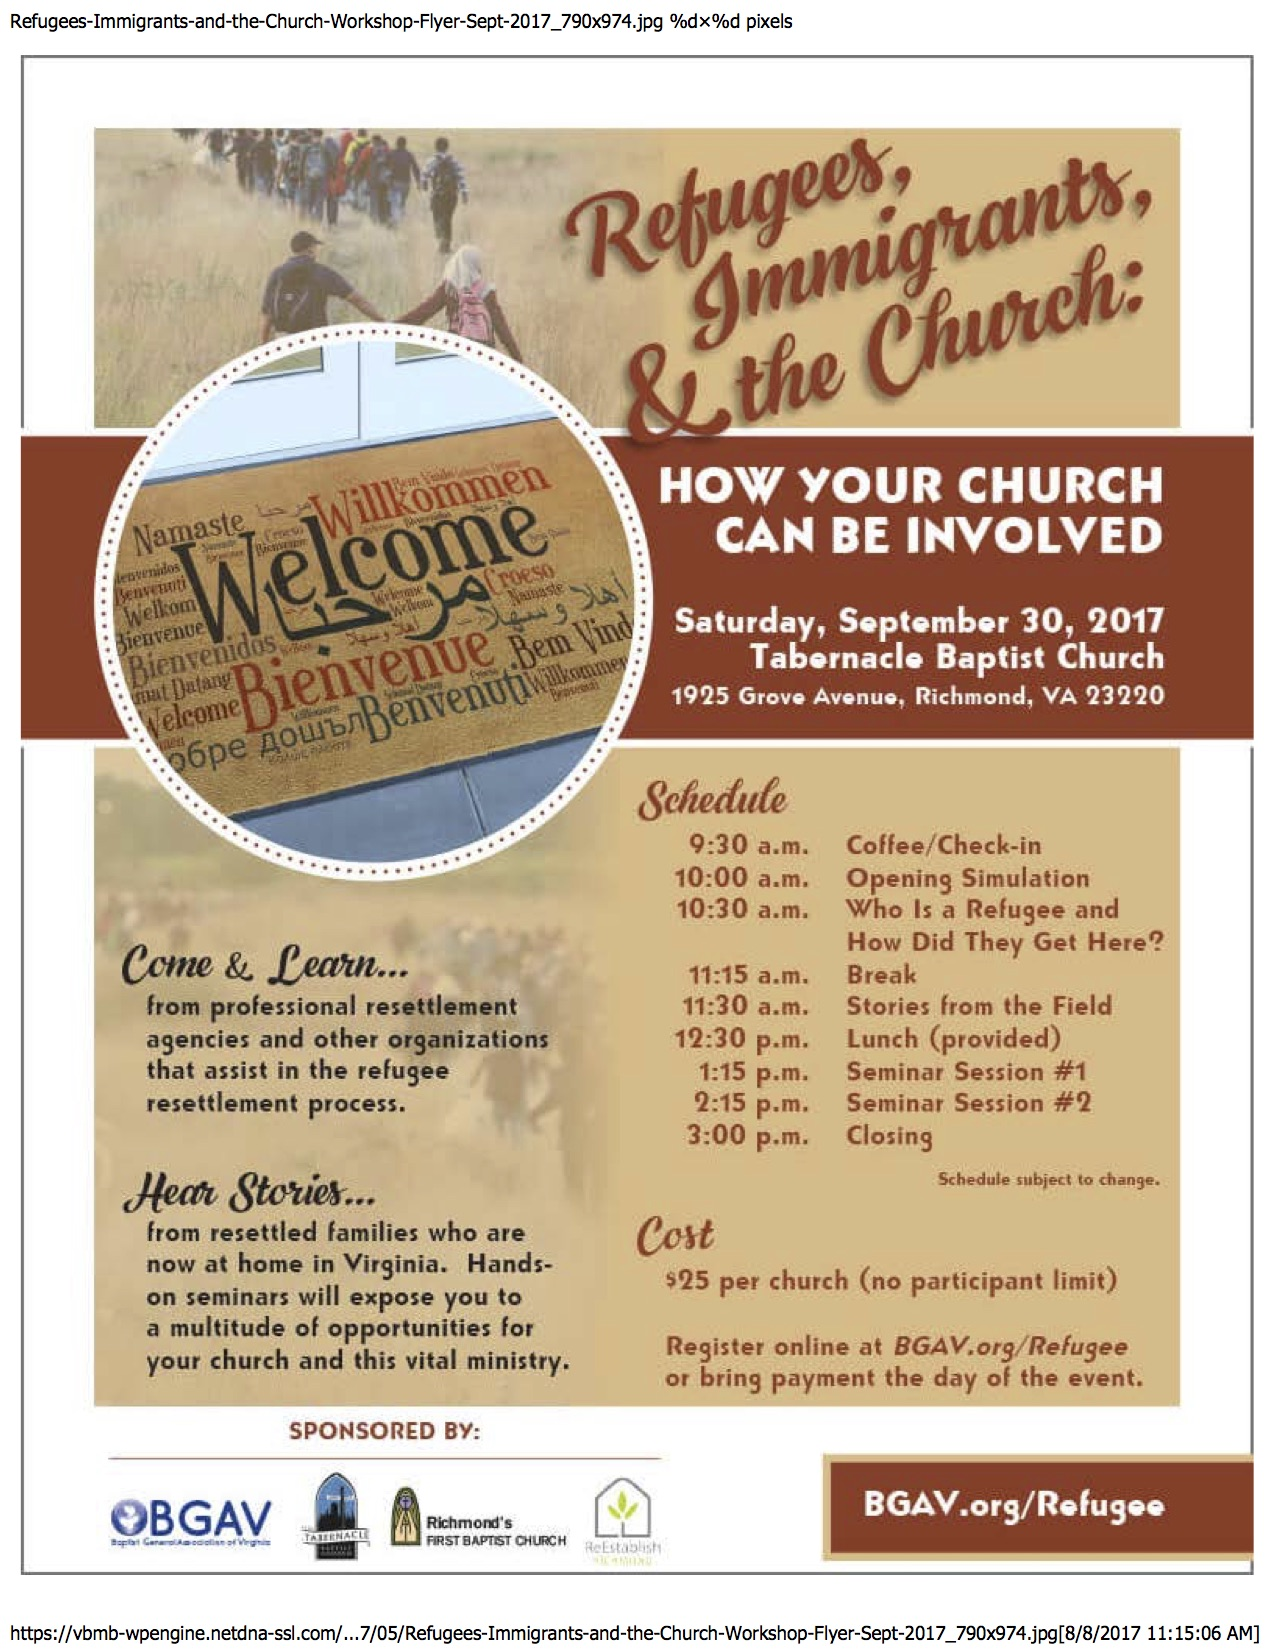 Refugees-Immigrants-and-the-Church-Workshop-Flyer-Sept-2017 (1).jpg